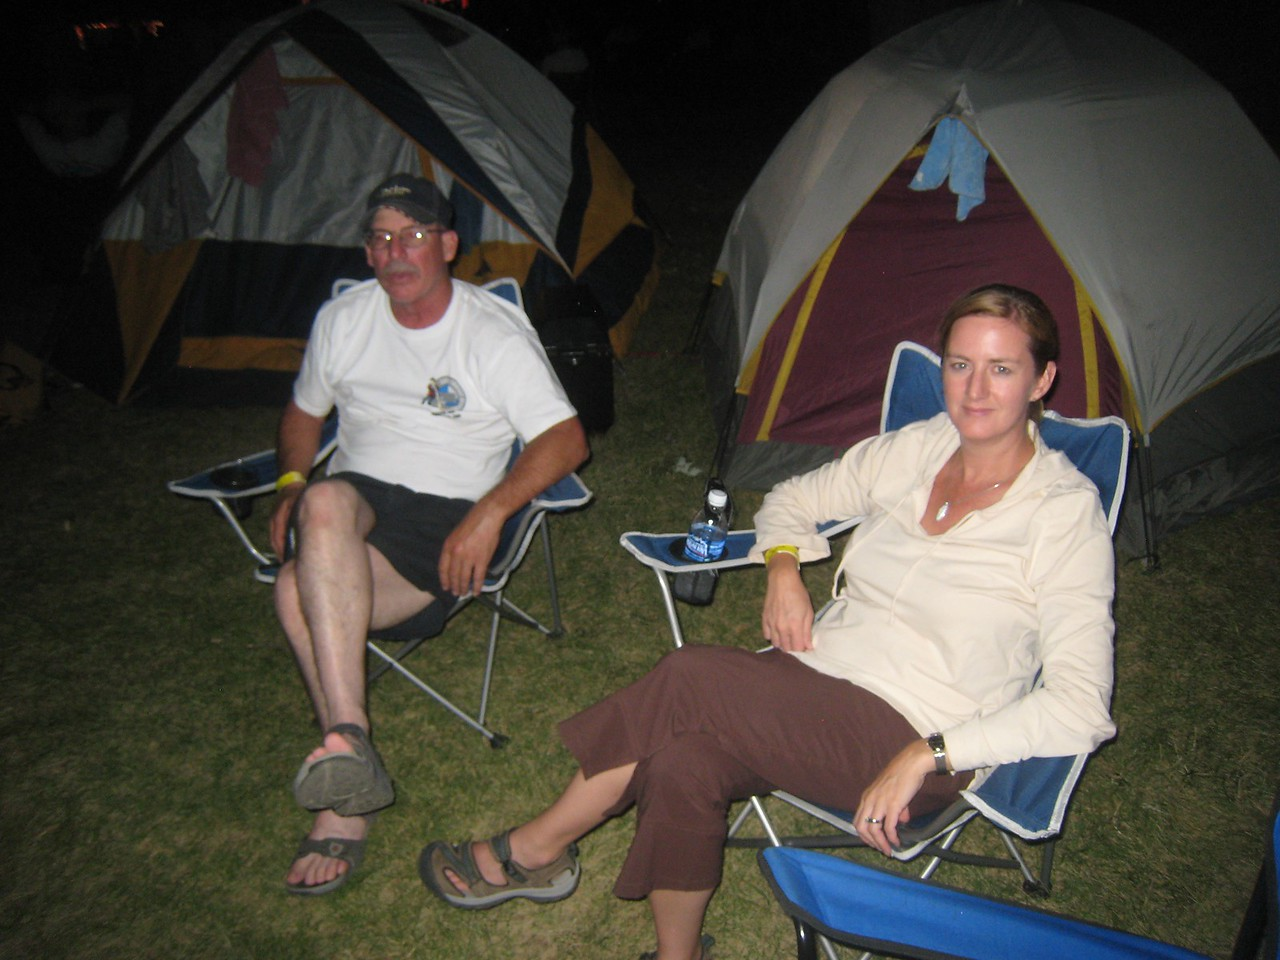 Rango and Maria hanging out at the campsite.